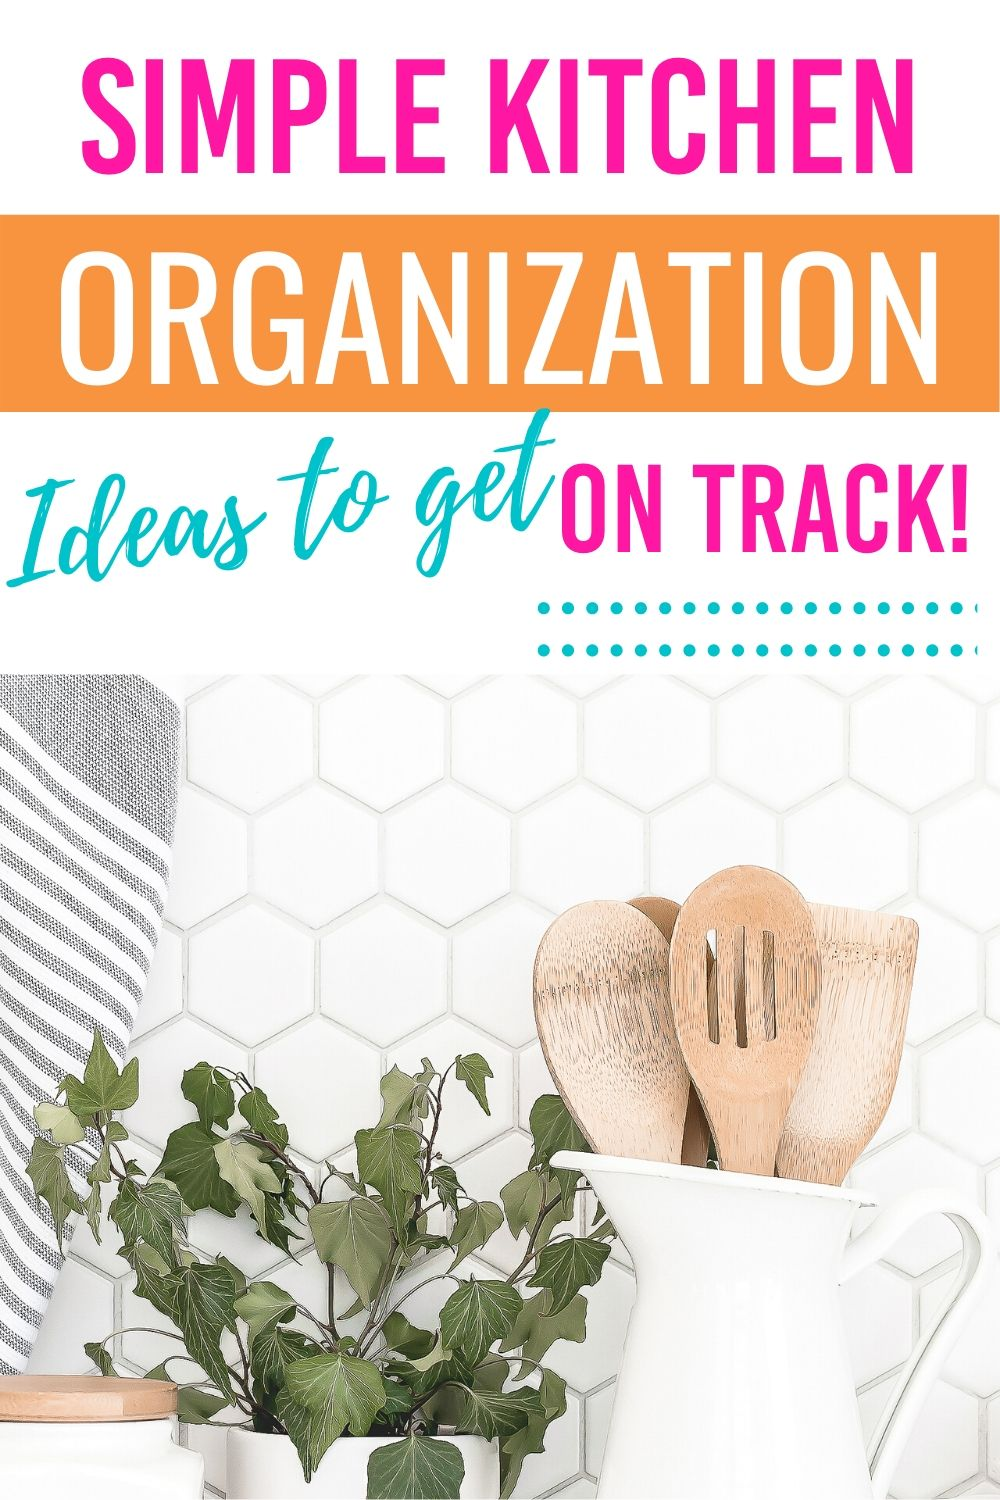 If you're looking for great kitchen organization ideas to tackle that area of your home, these organizing hacks and tips will keep your kitchen organized. #organizingtips #organizinghacks #organizingtipsandtricks #kitchen #cleankitchen #kitchenorganizingideas via @homebyjenn